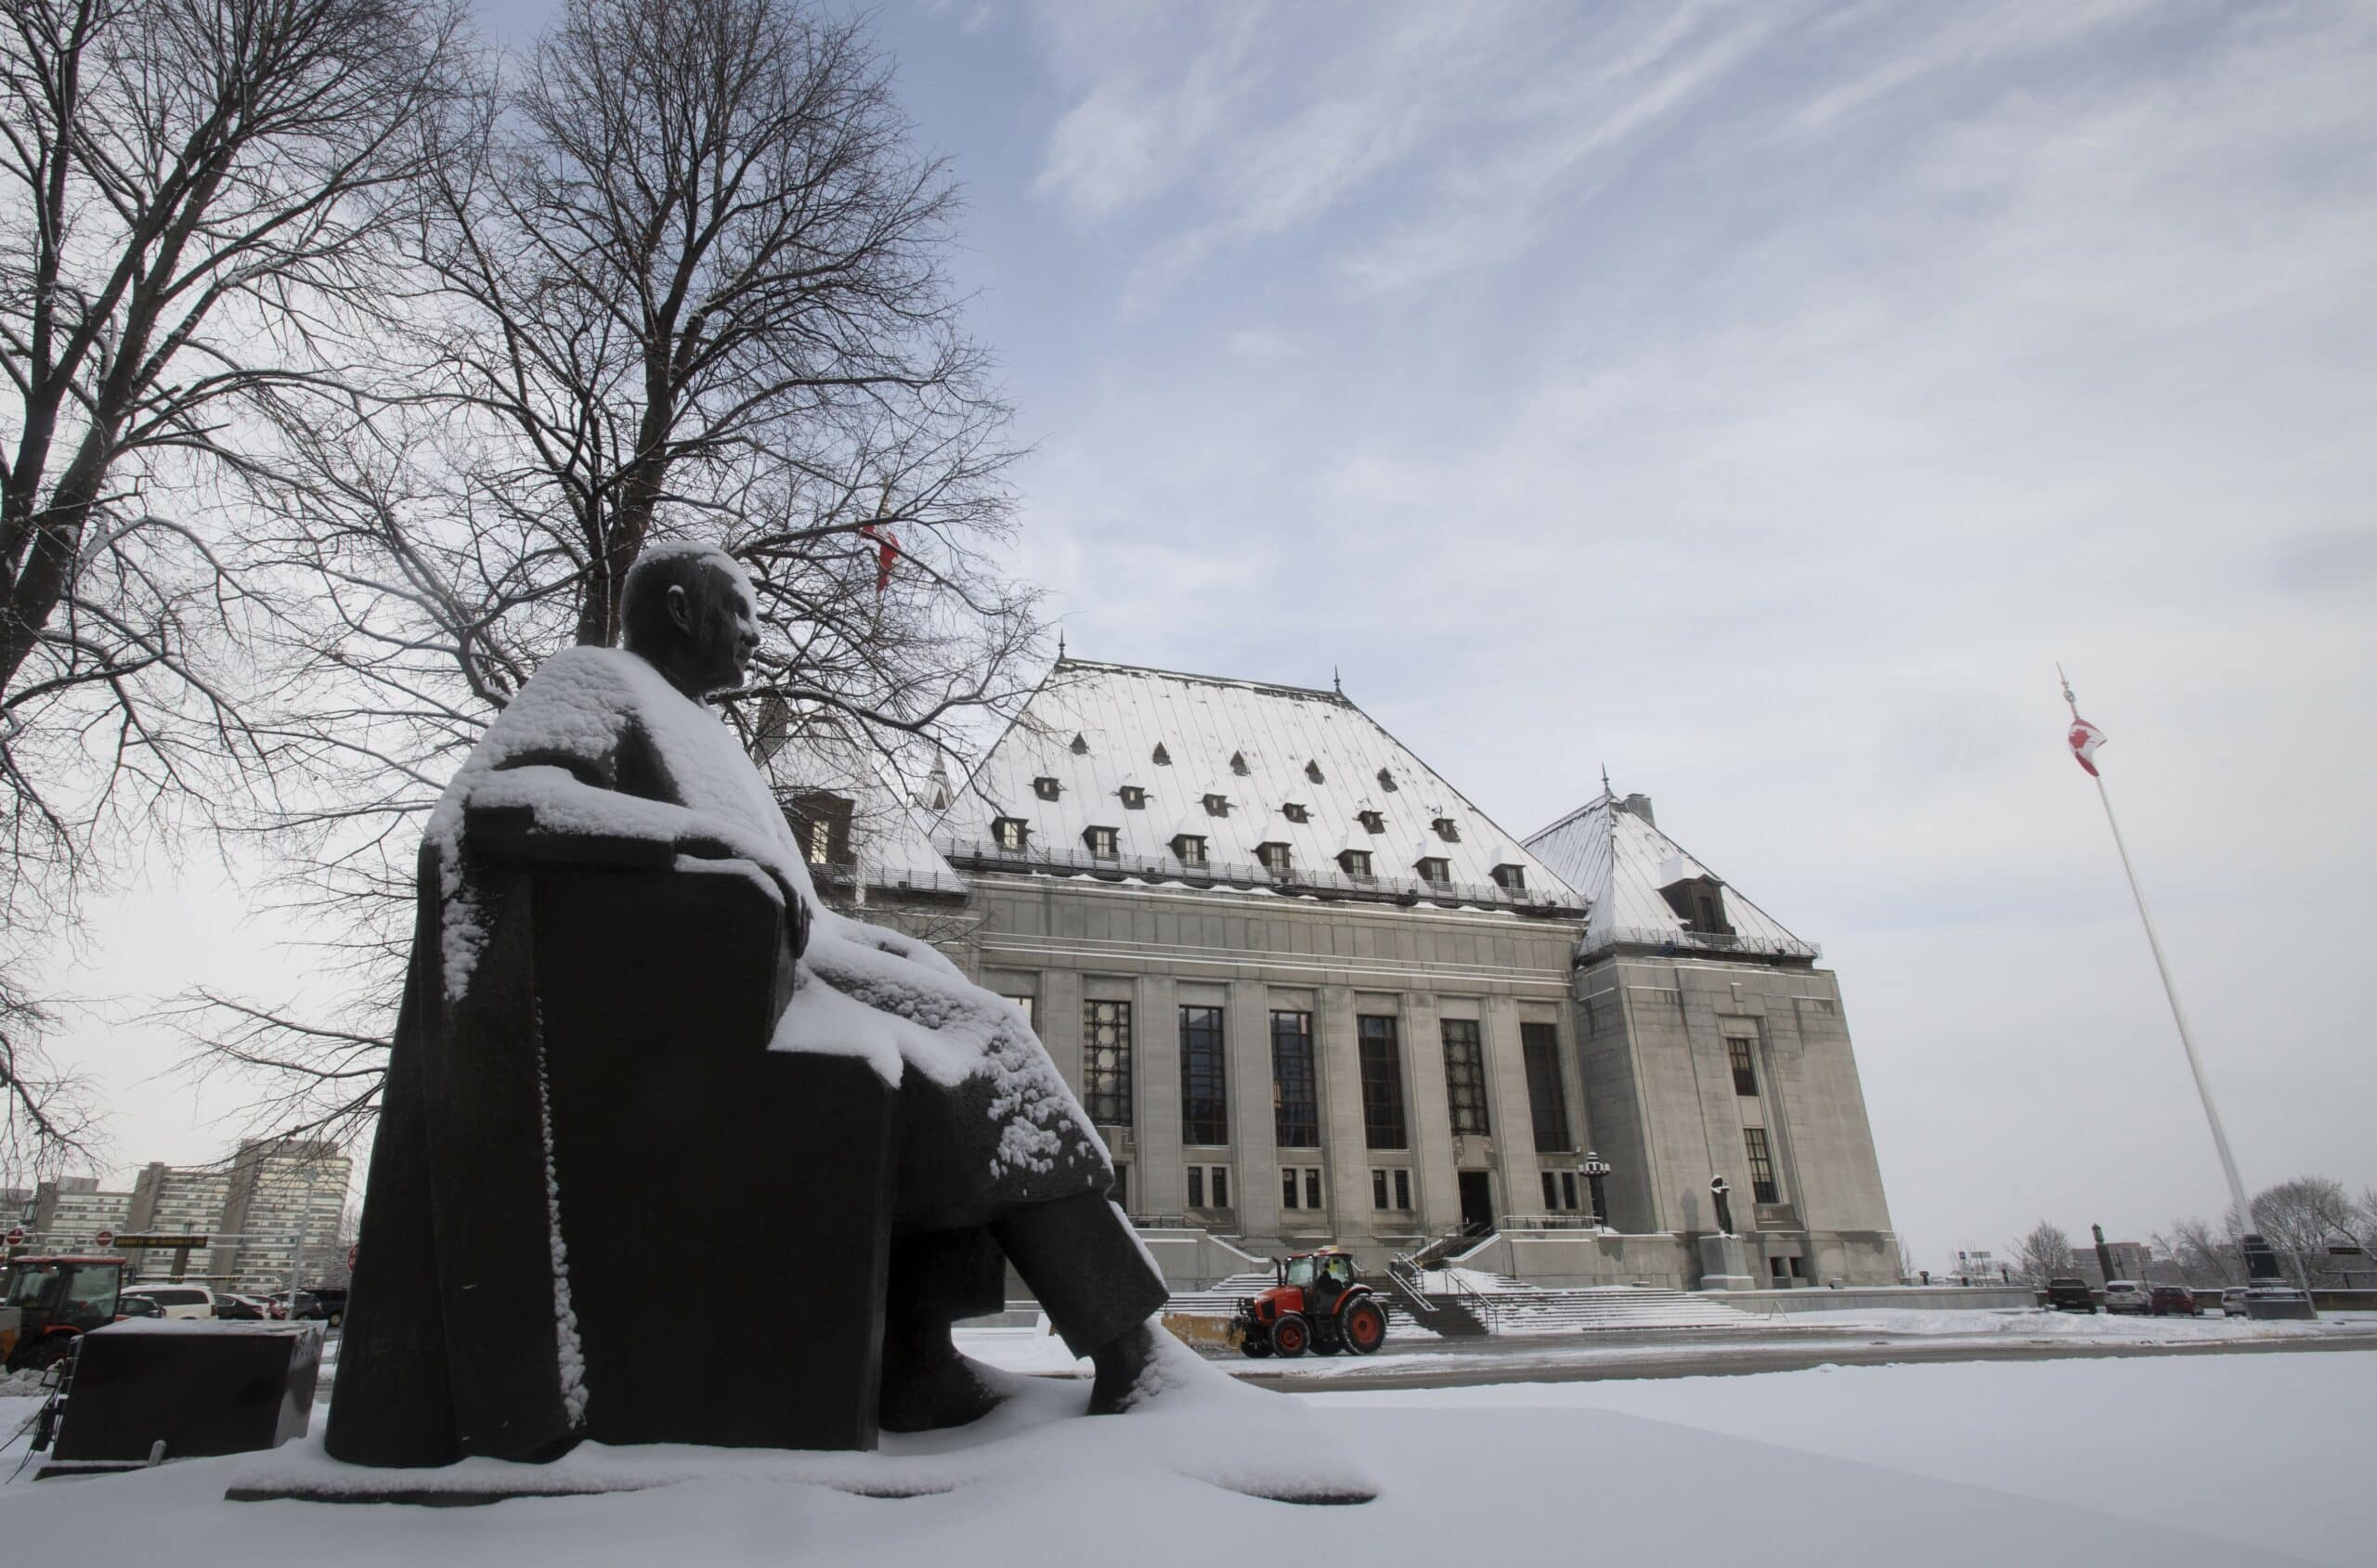 Canada Supreme Court building